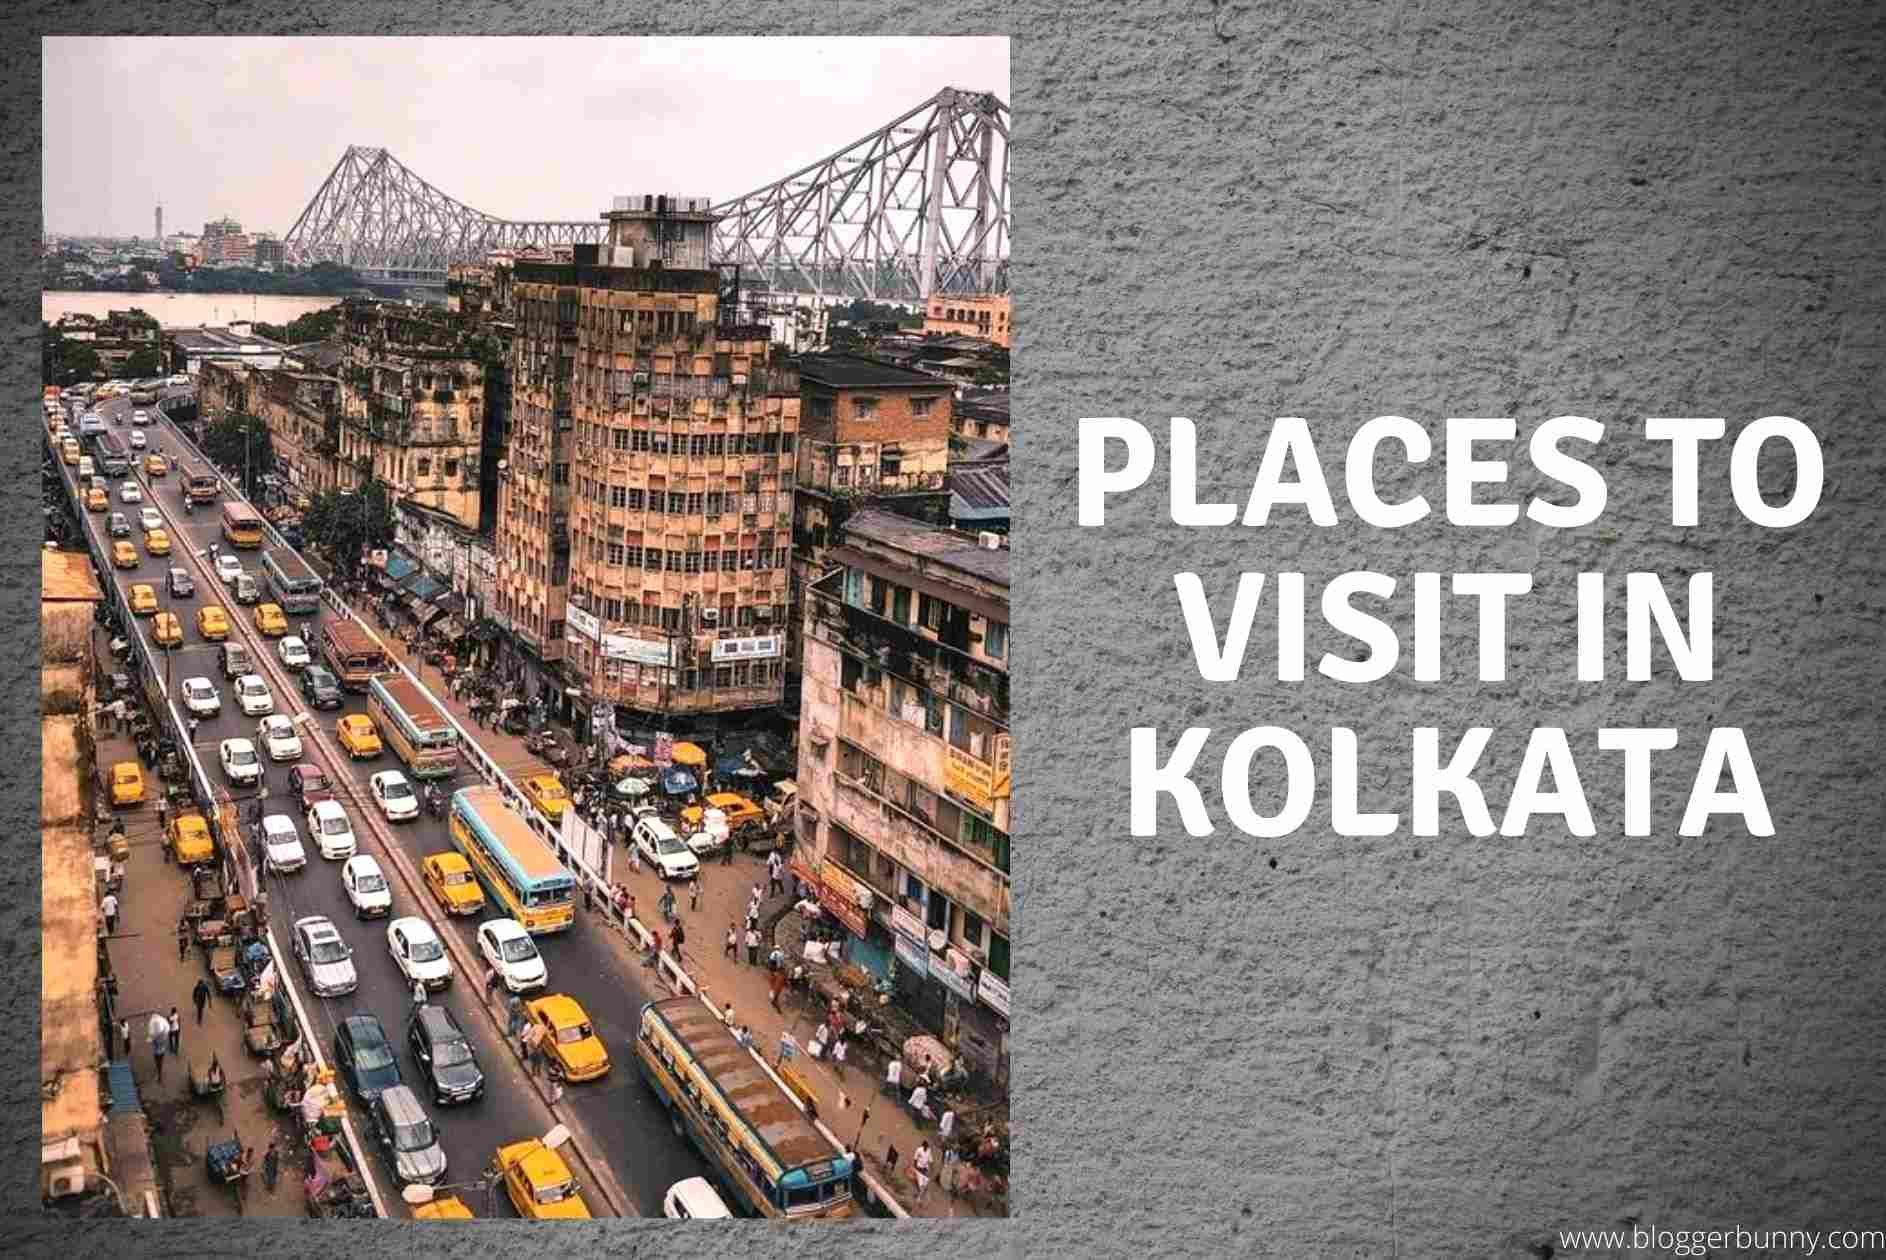 6 BEST PLACES TO VISIT IN KOLKATA